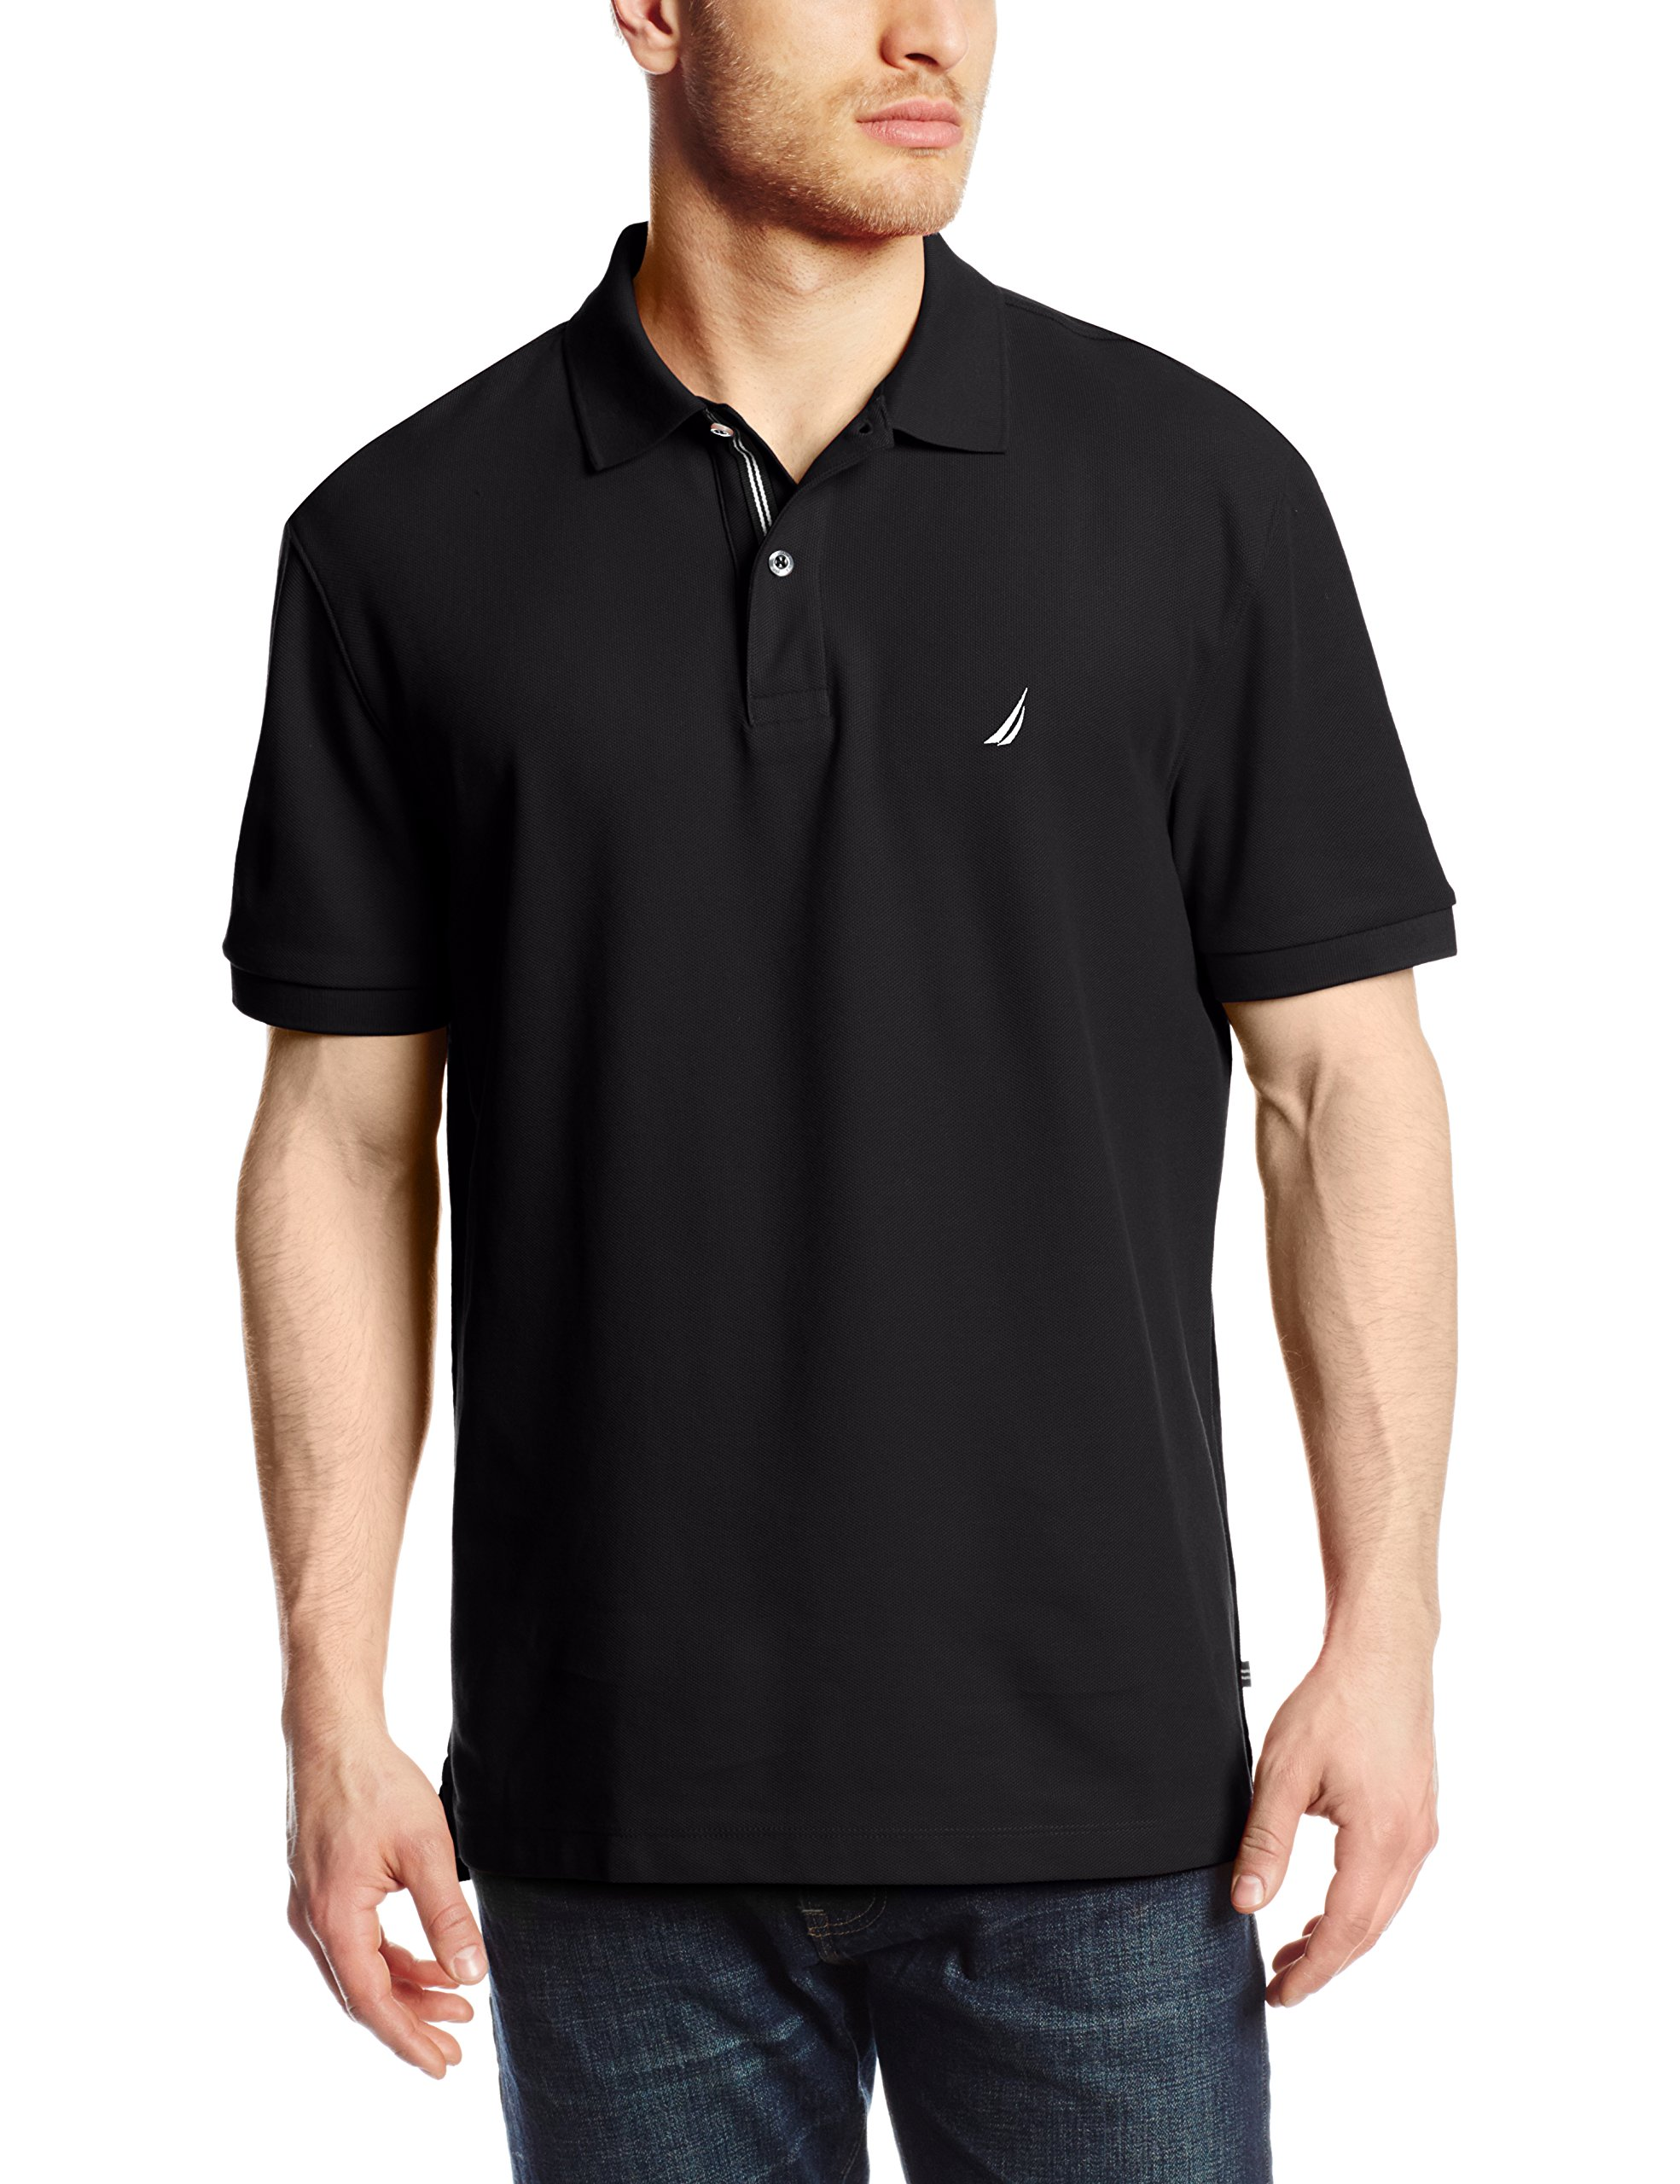 2fc4b069 Best Rated in Men's Polo Shirts & Helpful Customer Reviews - Amazon.com